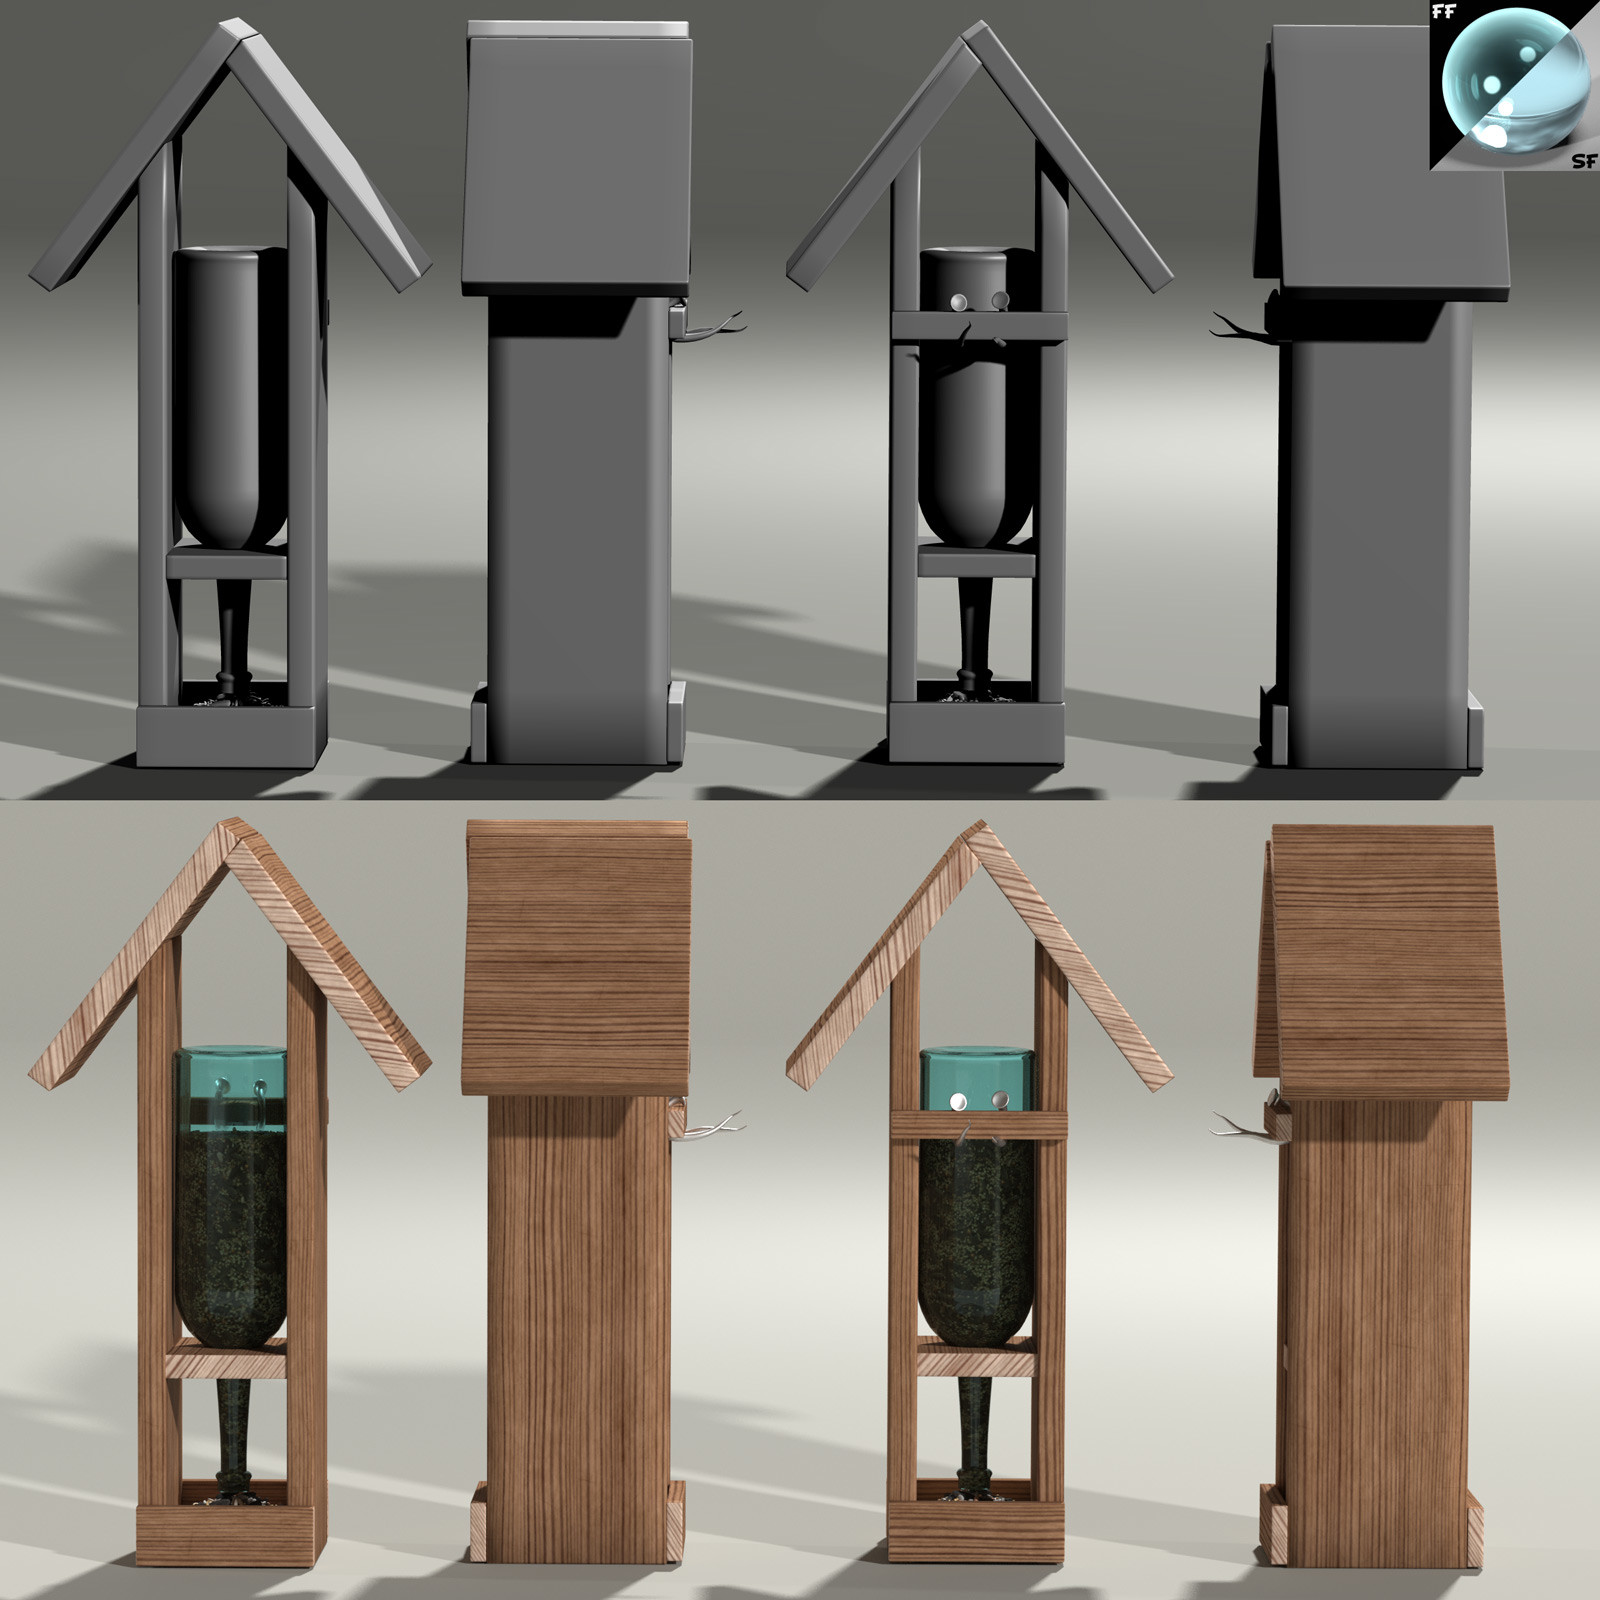 This is a 360 degree turnaround of the wine bottle-based bird feeder, rendered in Poser with SuperFly/Cycles.